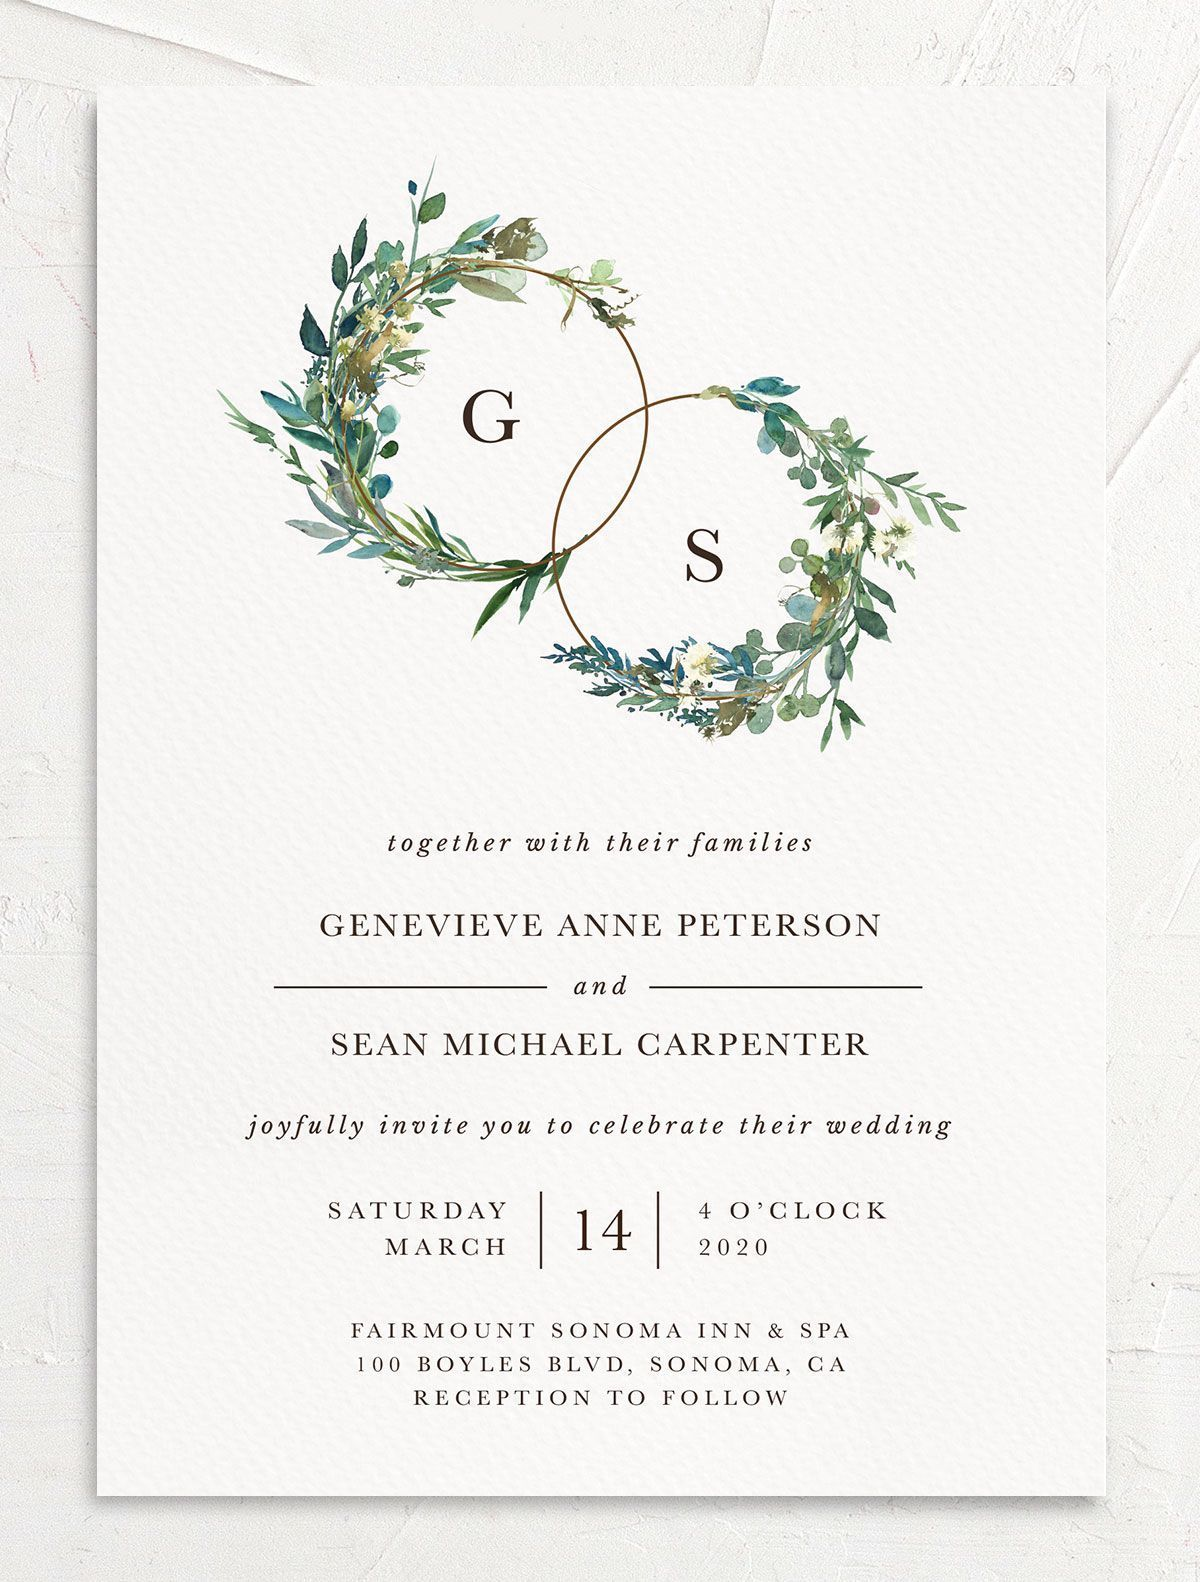 Leafy Hoops Modern Wedding Invitation With Greenery Engagement Invitation Cards Modern Wedding Invitations Floral Wedding Invitations